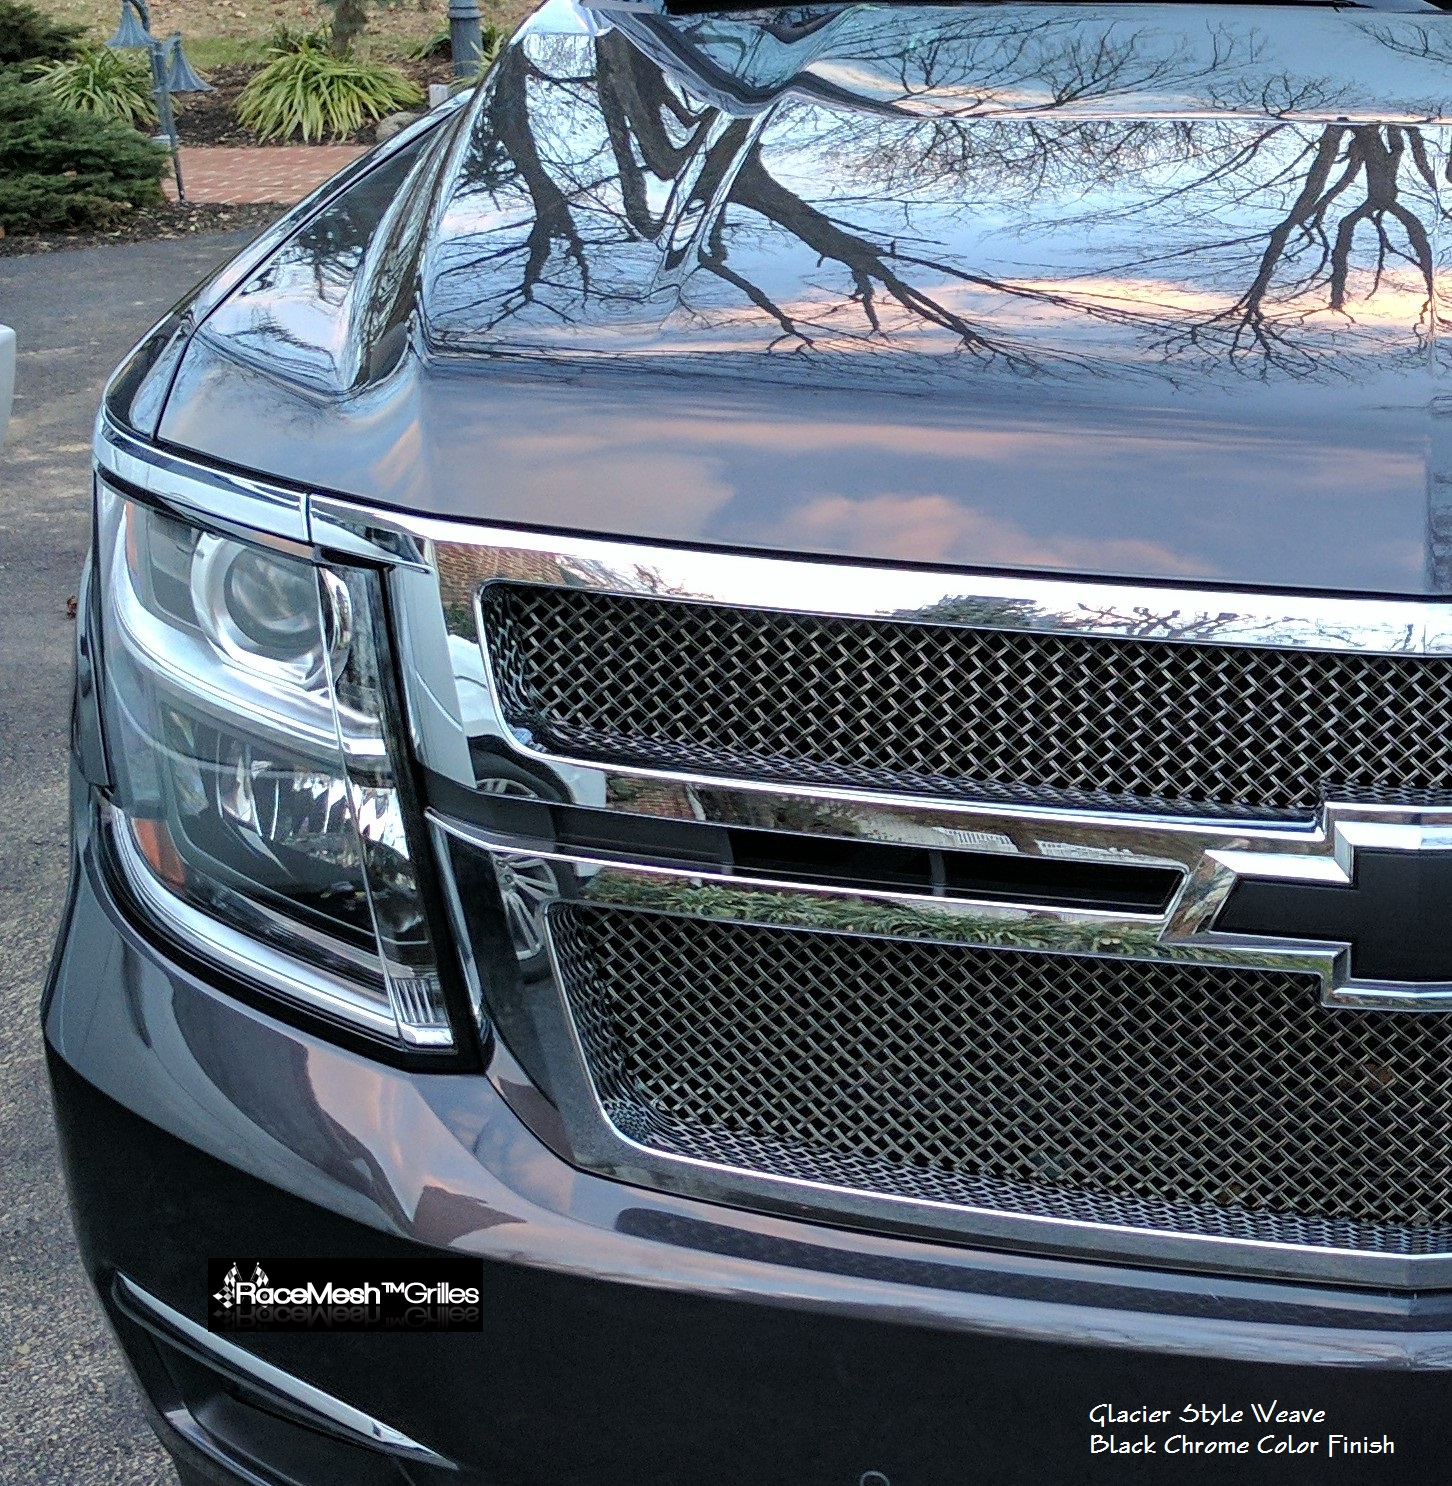 CHEVY Tahoe/Suburban Upper Grille  (2015- )  GLACIER Style weave